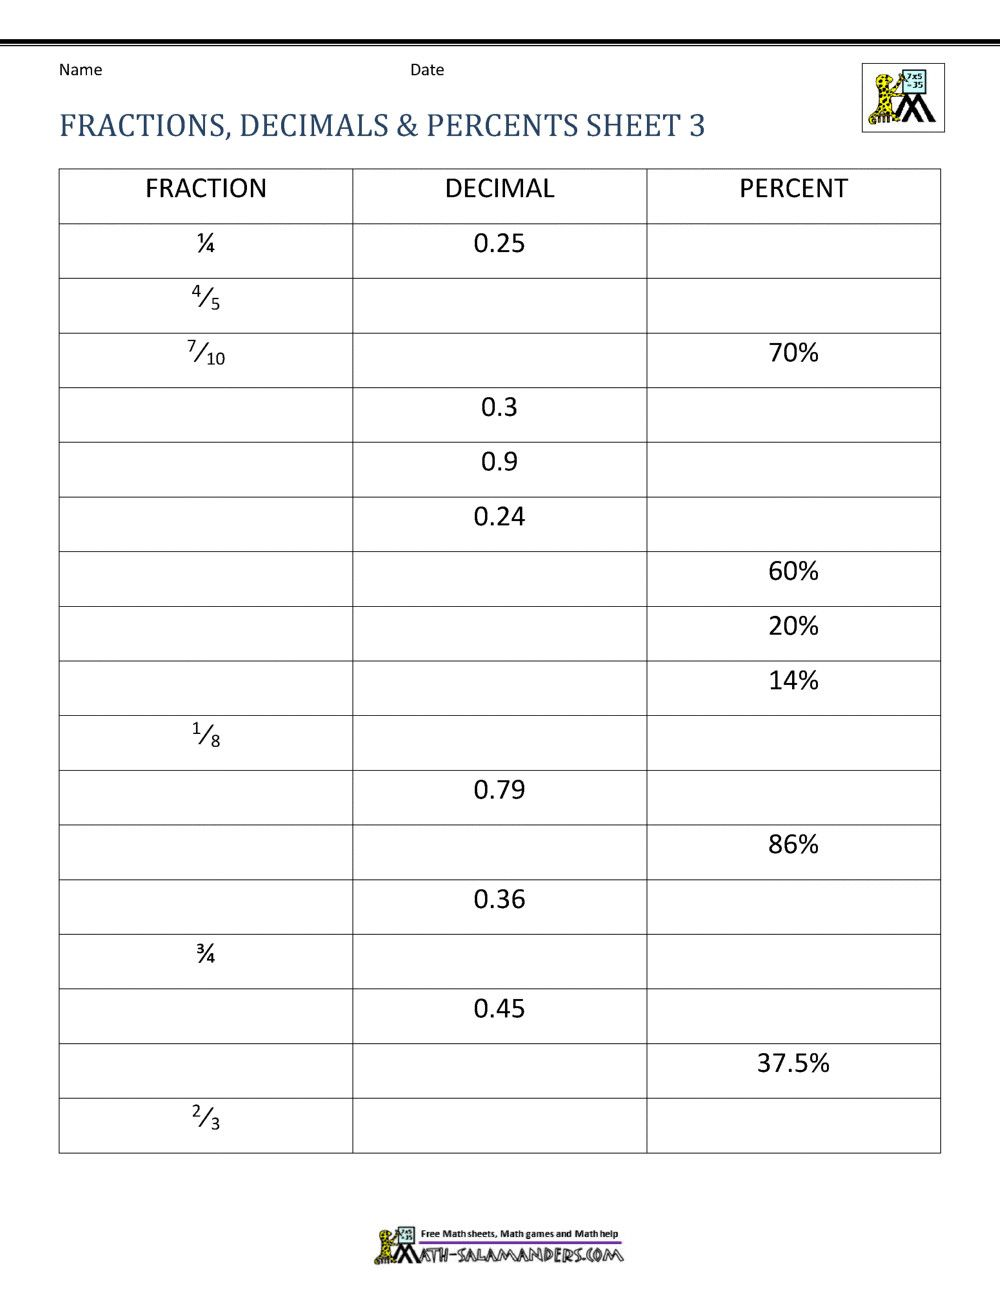 3 Finding A Percent Of A Number Worksheet With Answers Fractions Decimals Perc In 2020 Fractions Decimals Percents Fractions To Decimals Worksheet Fractions Worksheets